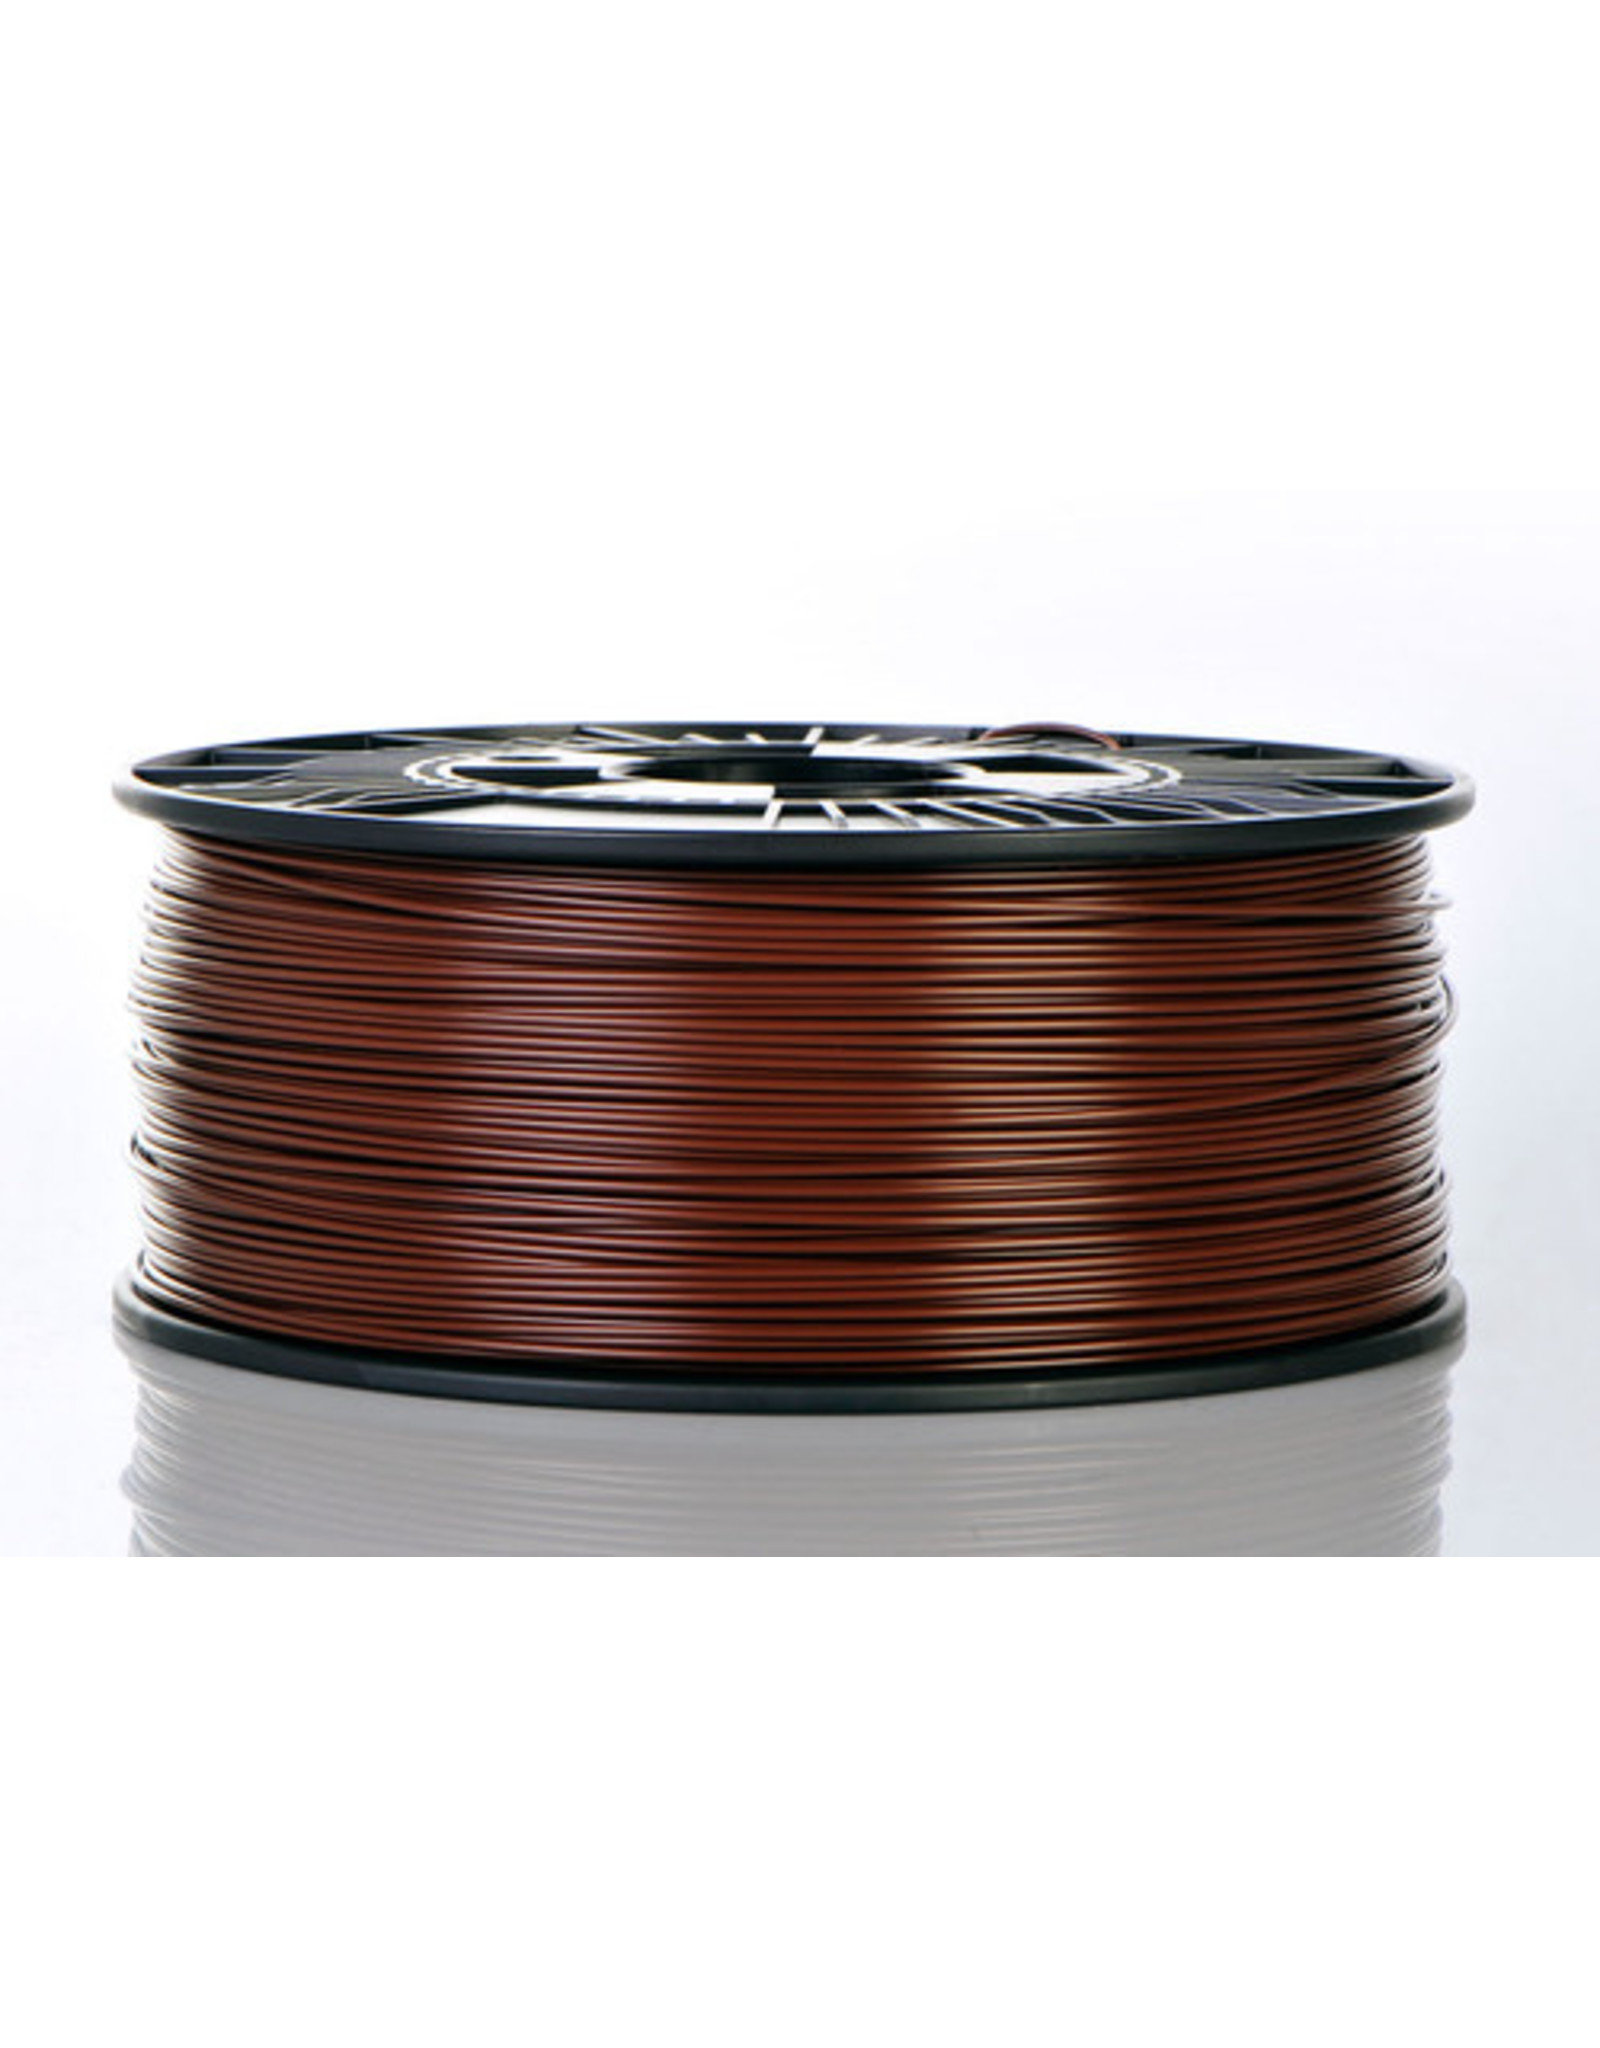 Material4Print ABS Choco brown 1.75mm